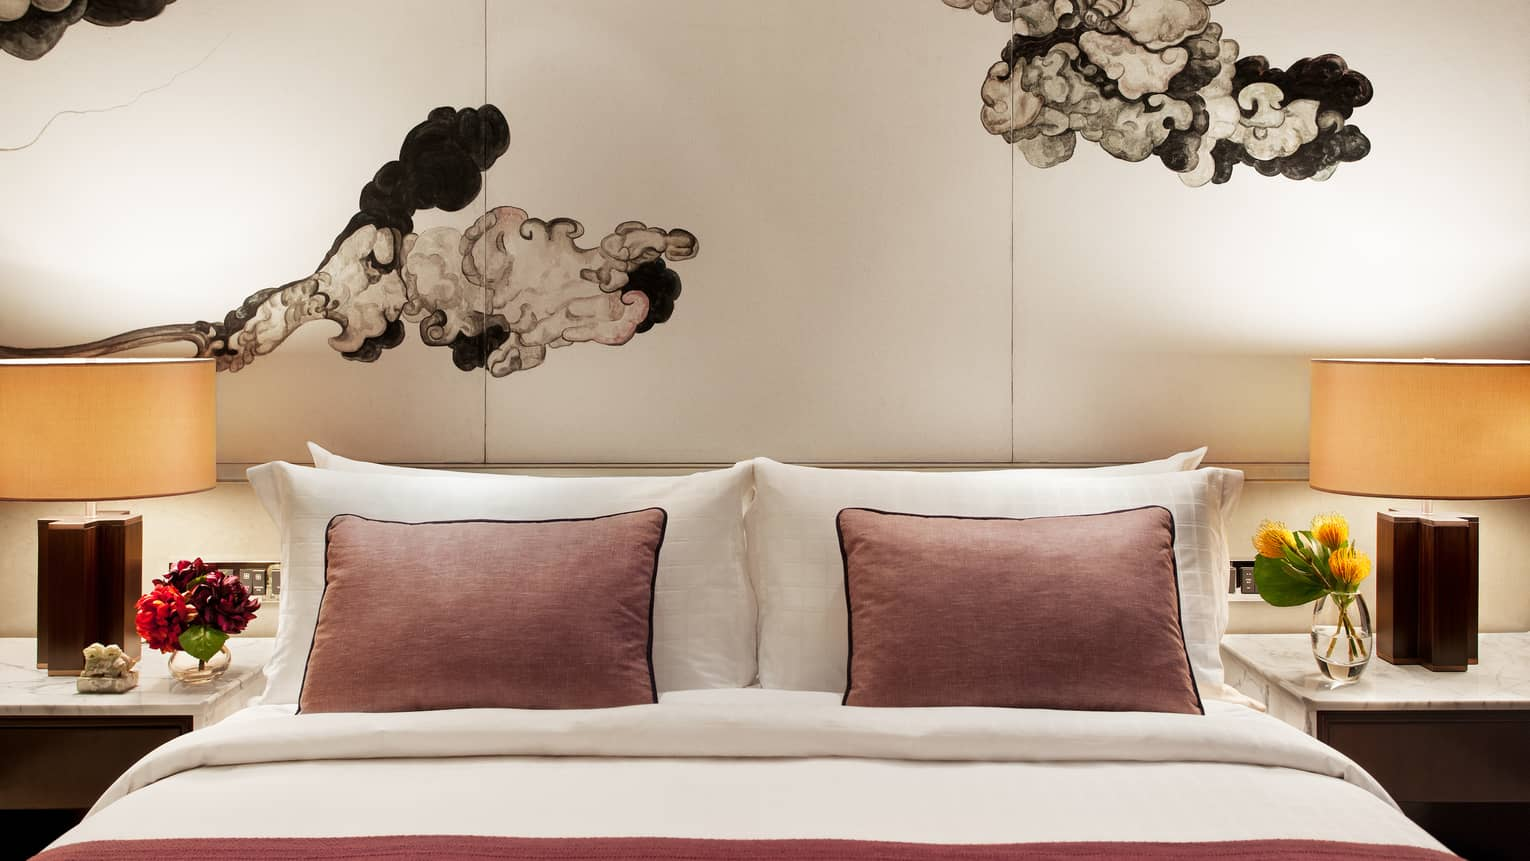 Club Grand Room hotel bed with pink accent pillows under Chinese brushwork mural